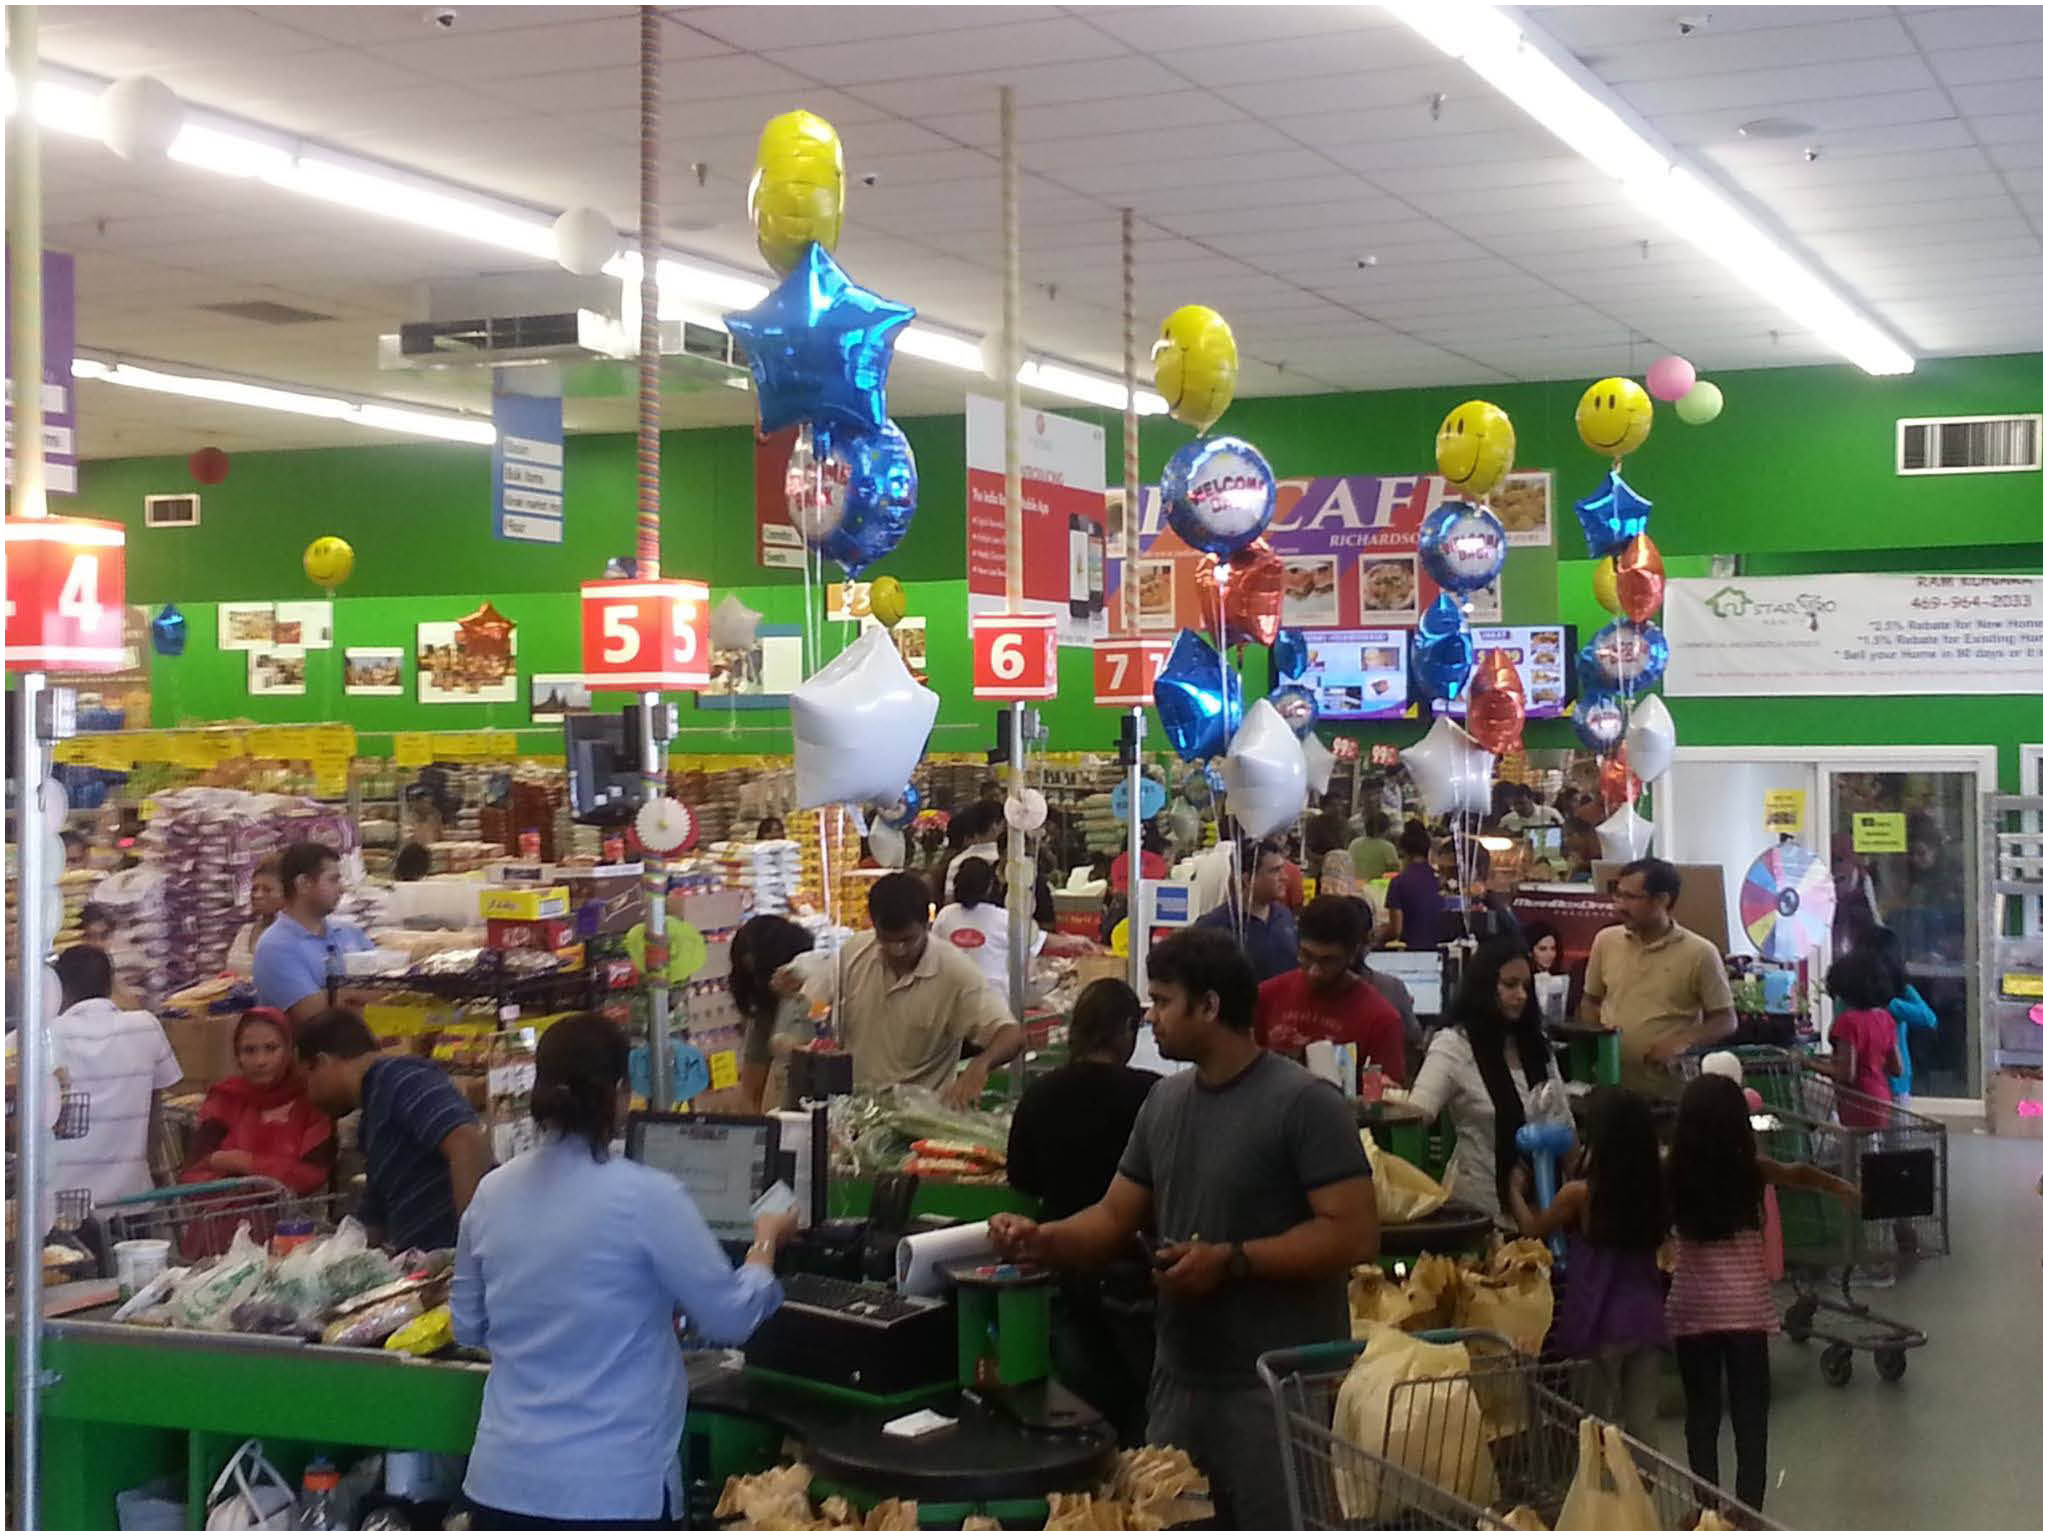 Grapevine Mills Grapevine Tx Business Directory Texas Map Store - Texas Map Store Coupon